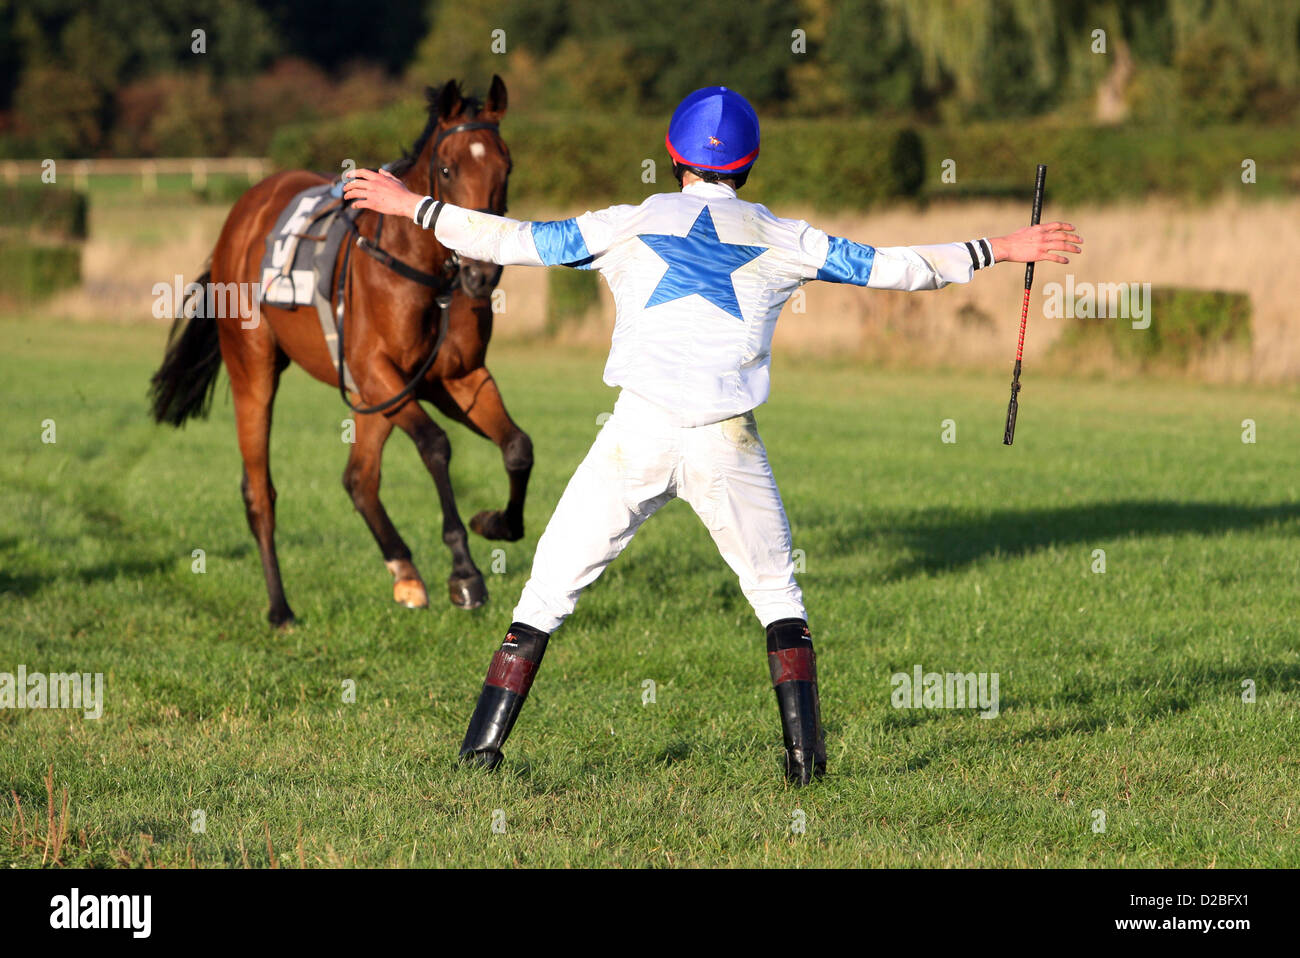 Hannover, Germany, jockey tries to stop his riderless horse - Stock Image